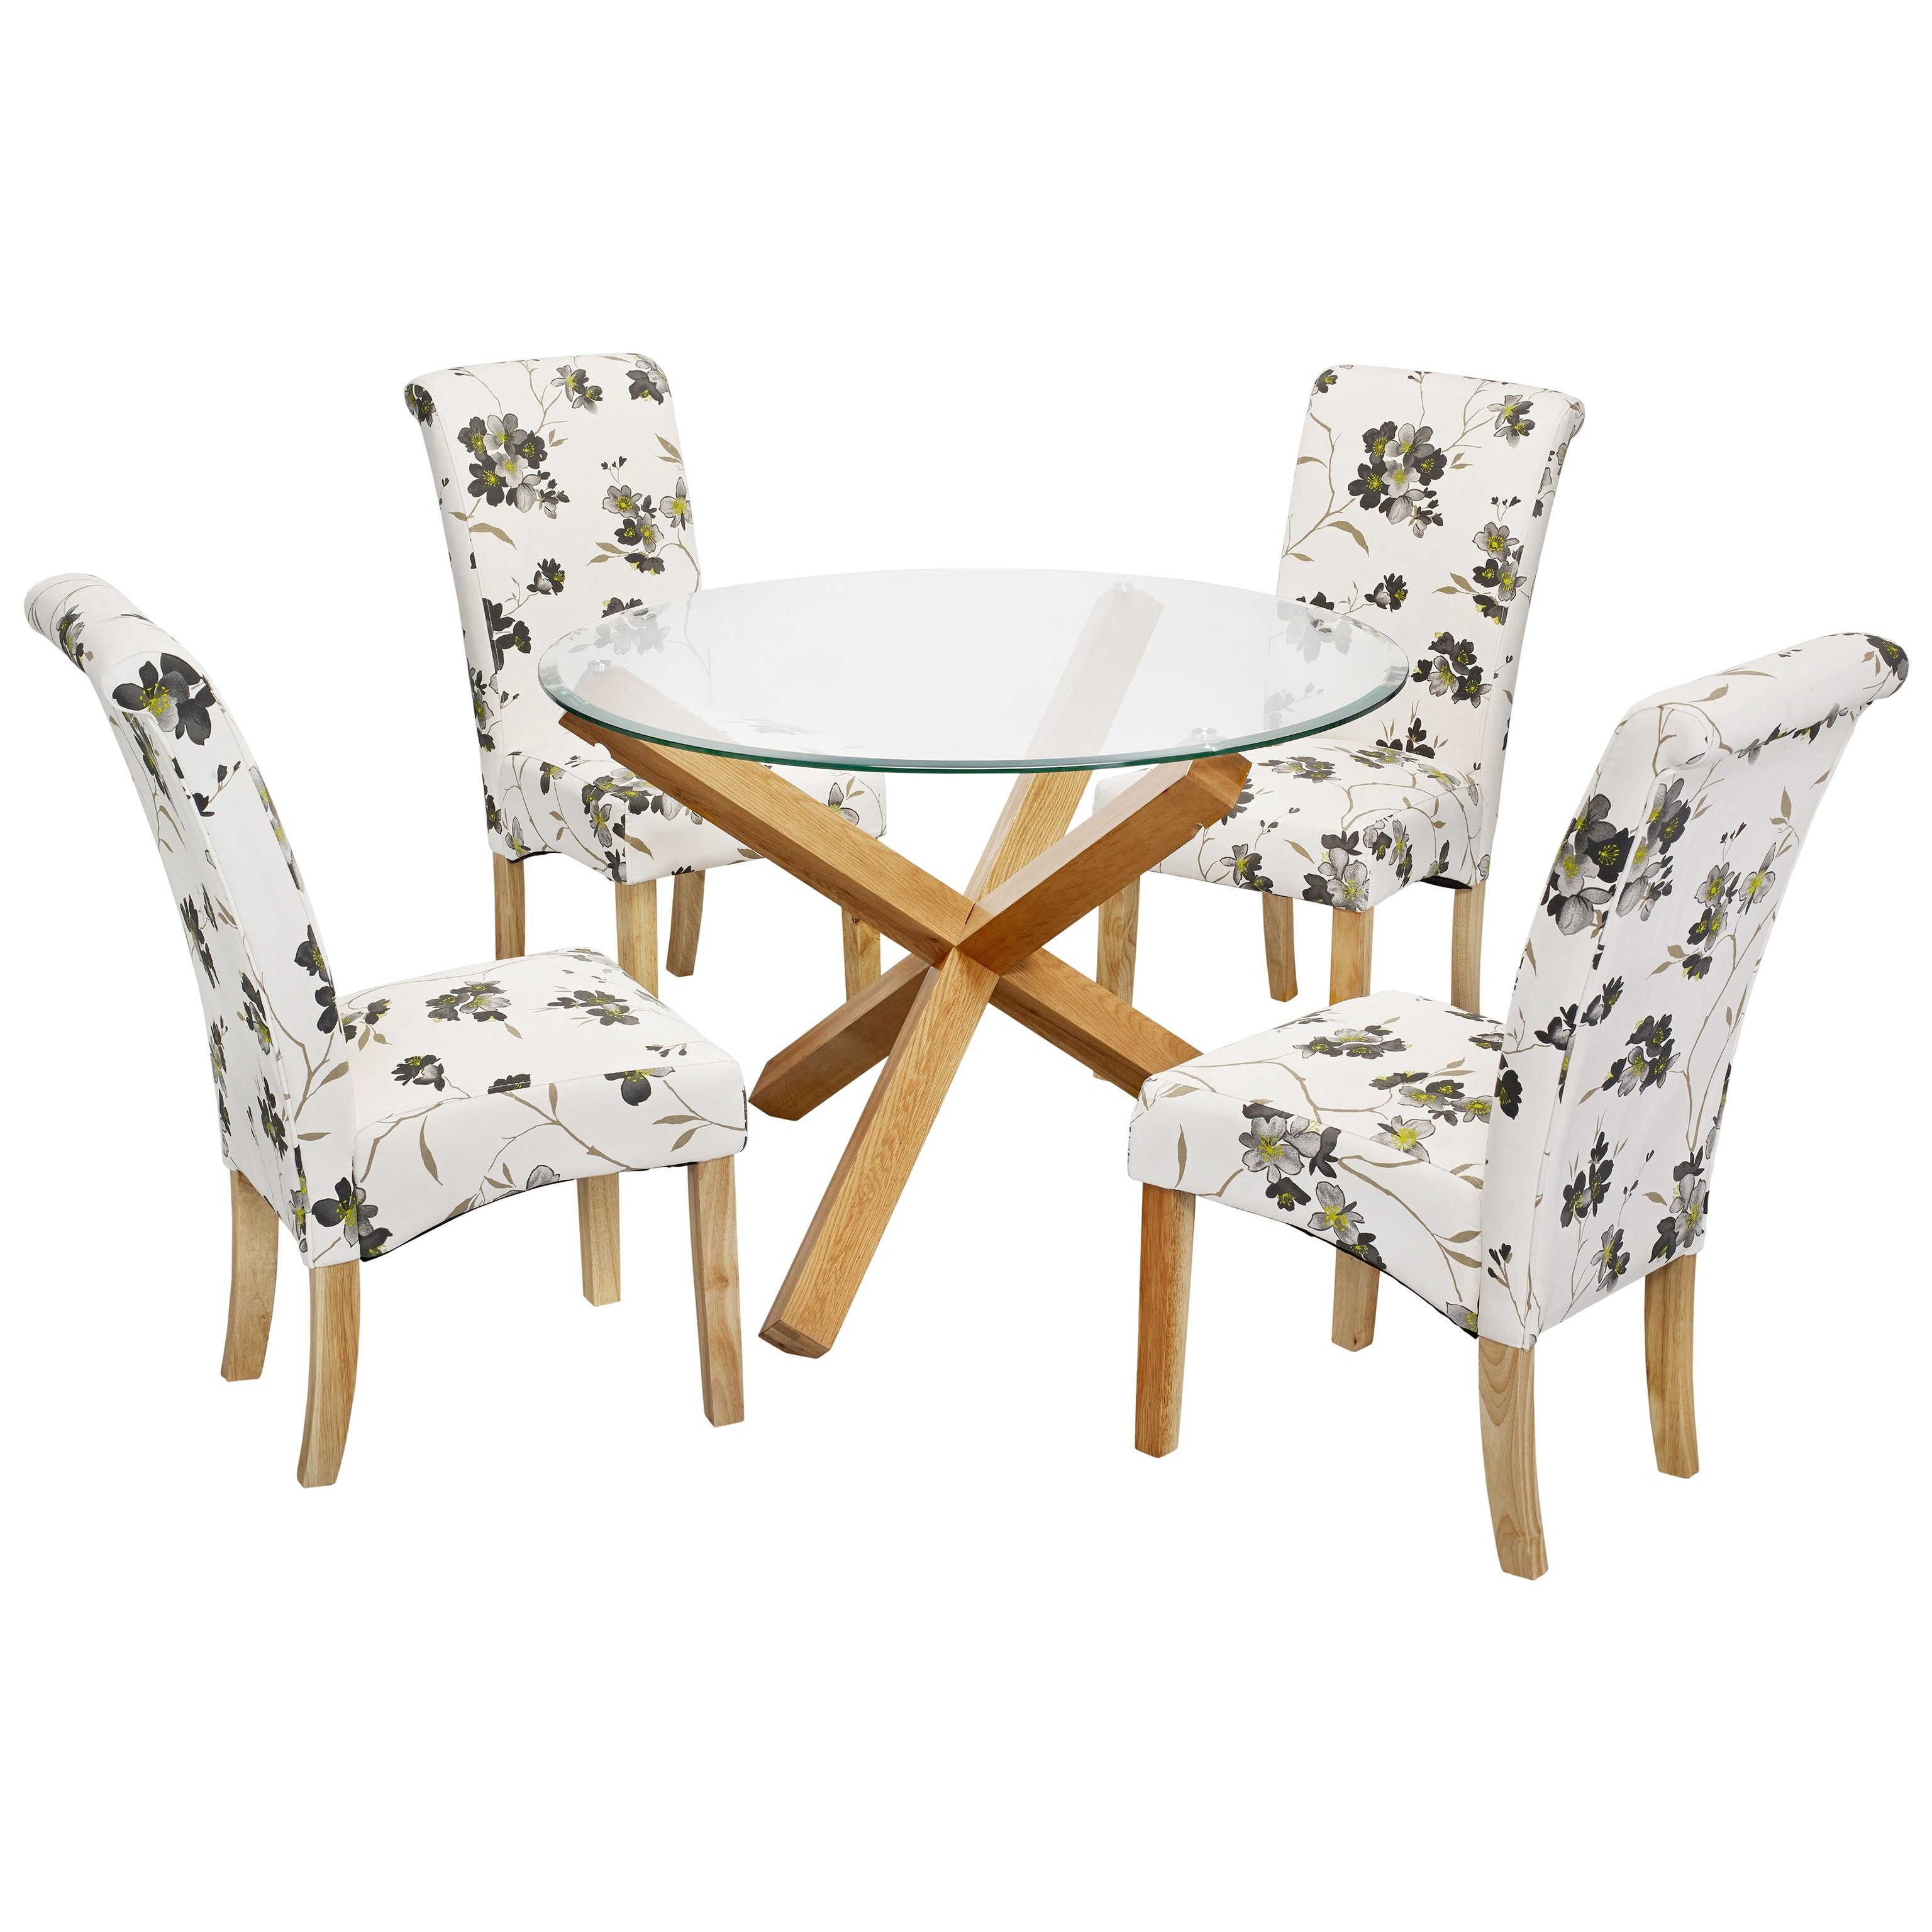 Solid Oak Glass Round Dining Table And Chair Set With 4, Round Table With Favorite Glass And Oak Dining Tables And Chairs (View 24 of 25)